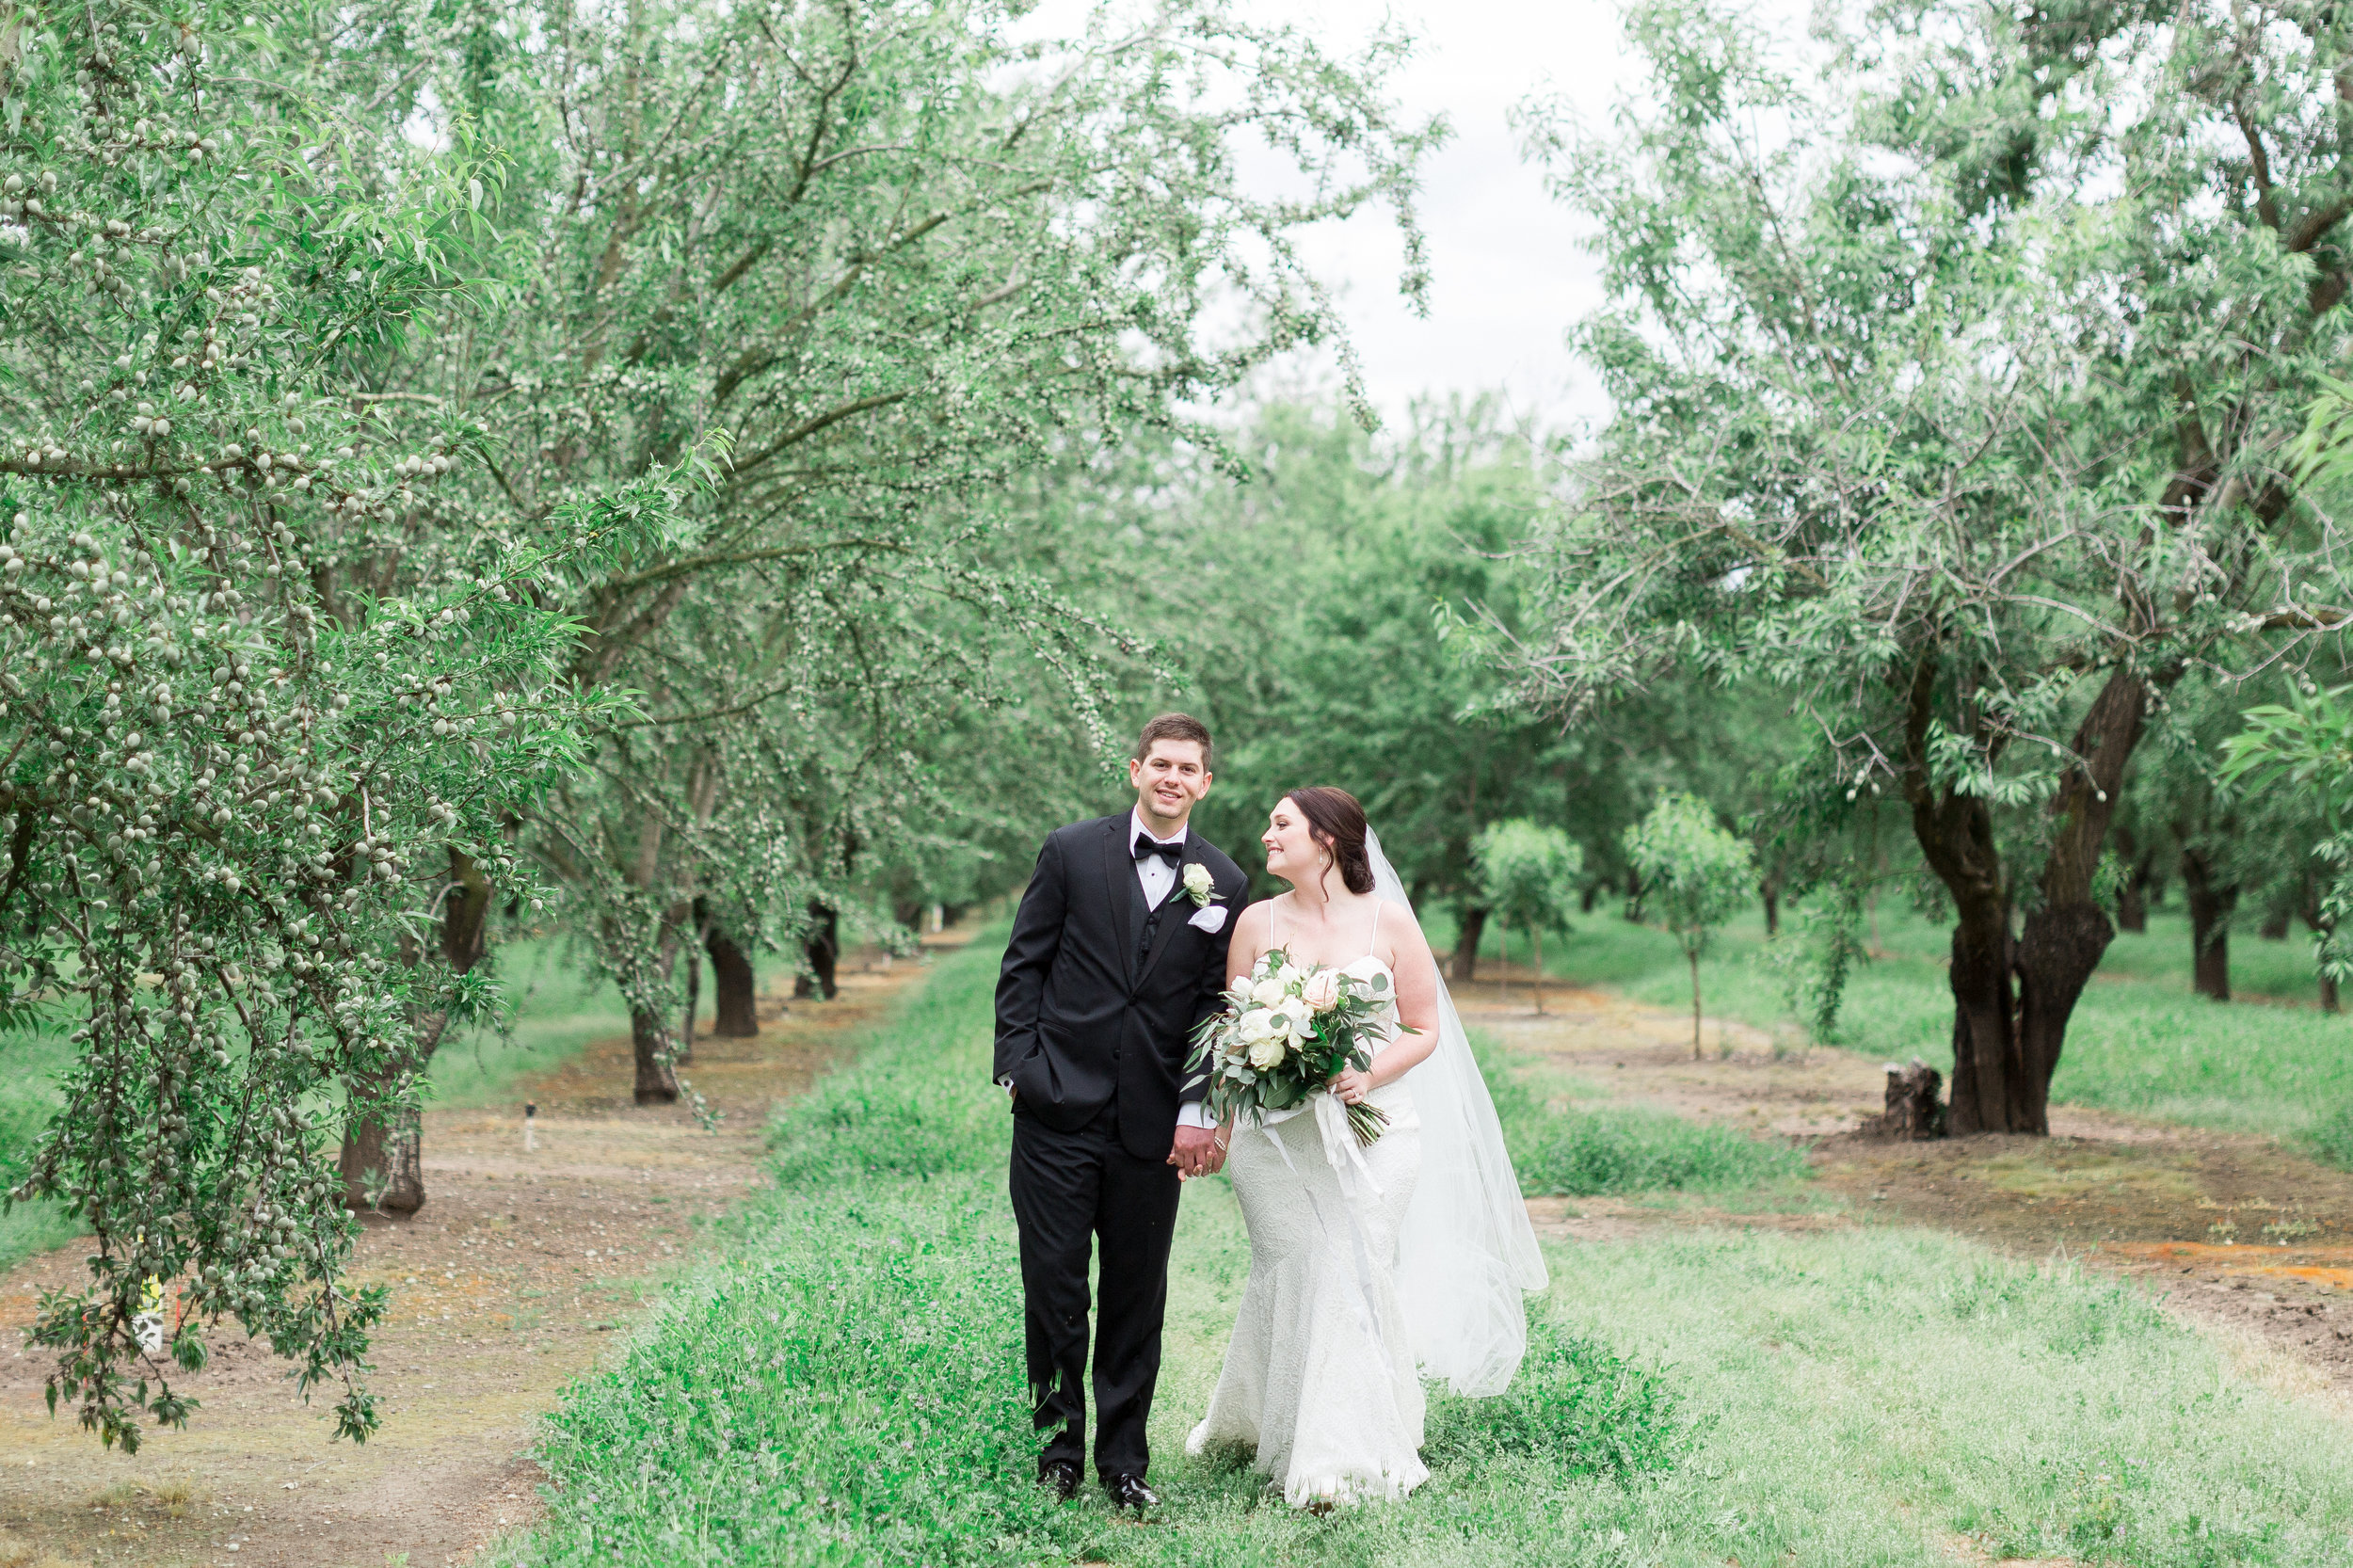 Patrick-Ranch-Wedding-Photos-77.jpg